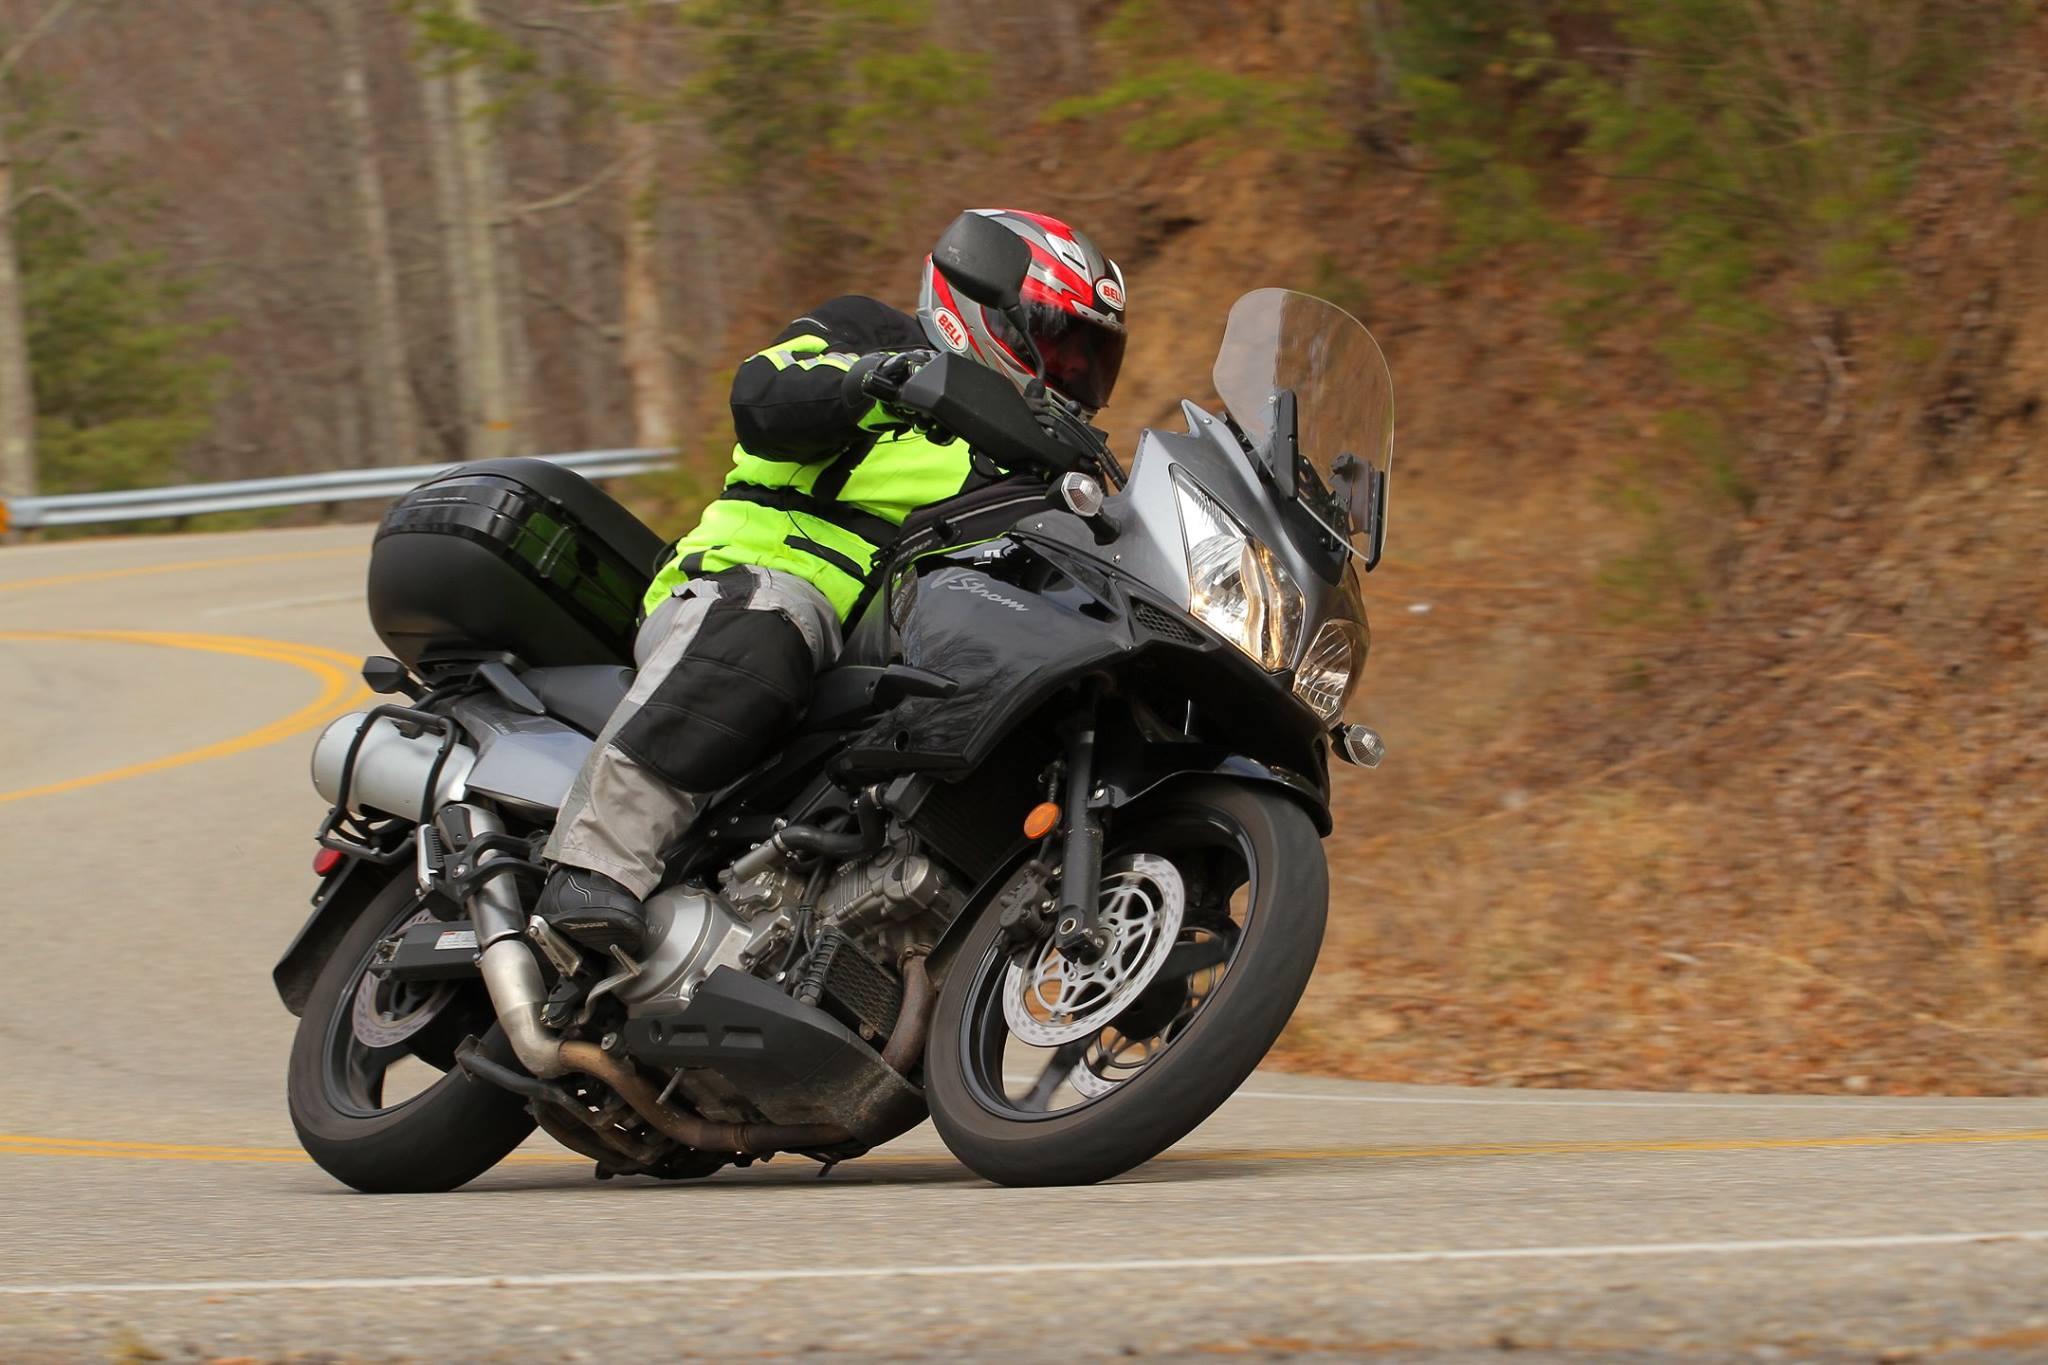 Lanny and his VStrom 1000